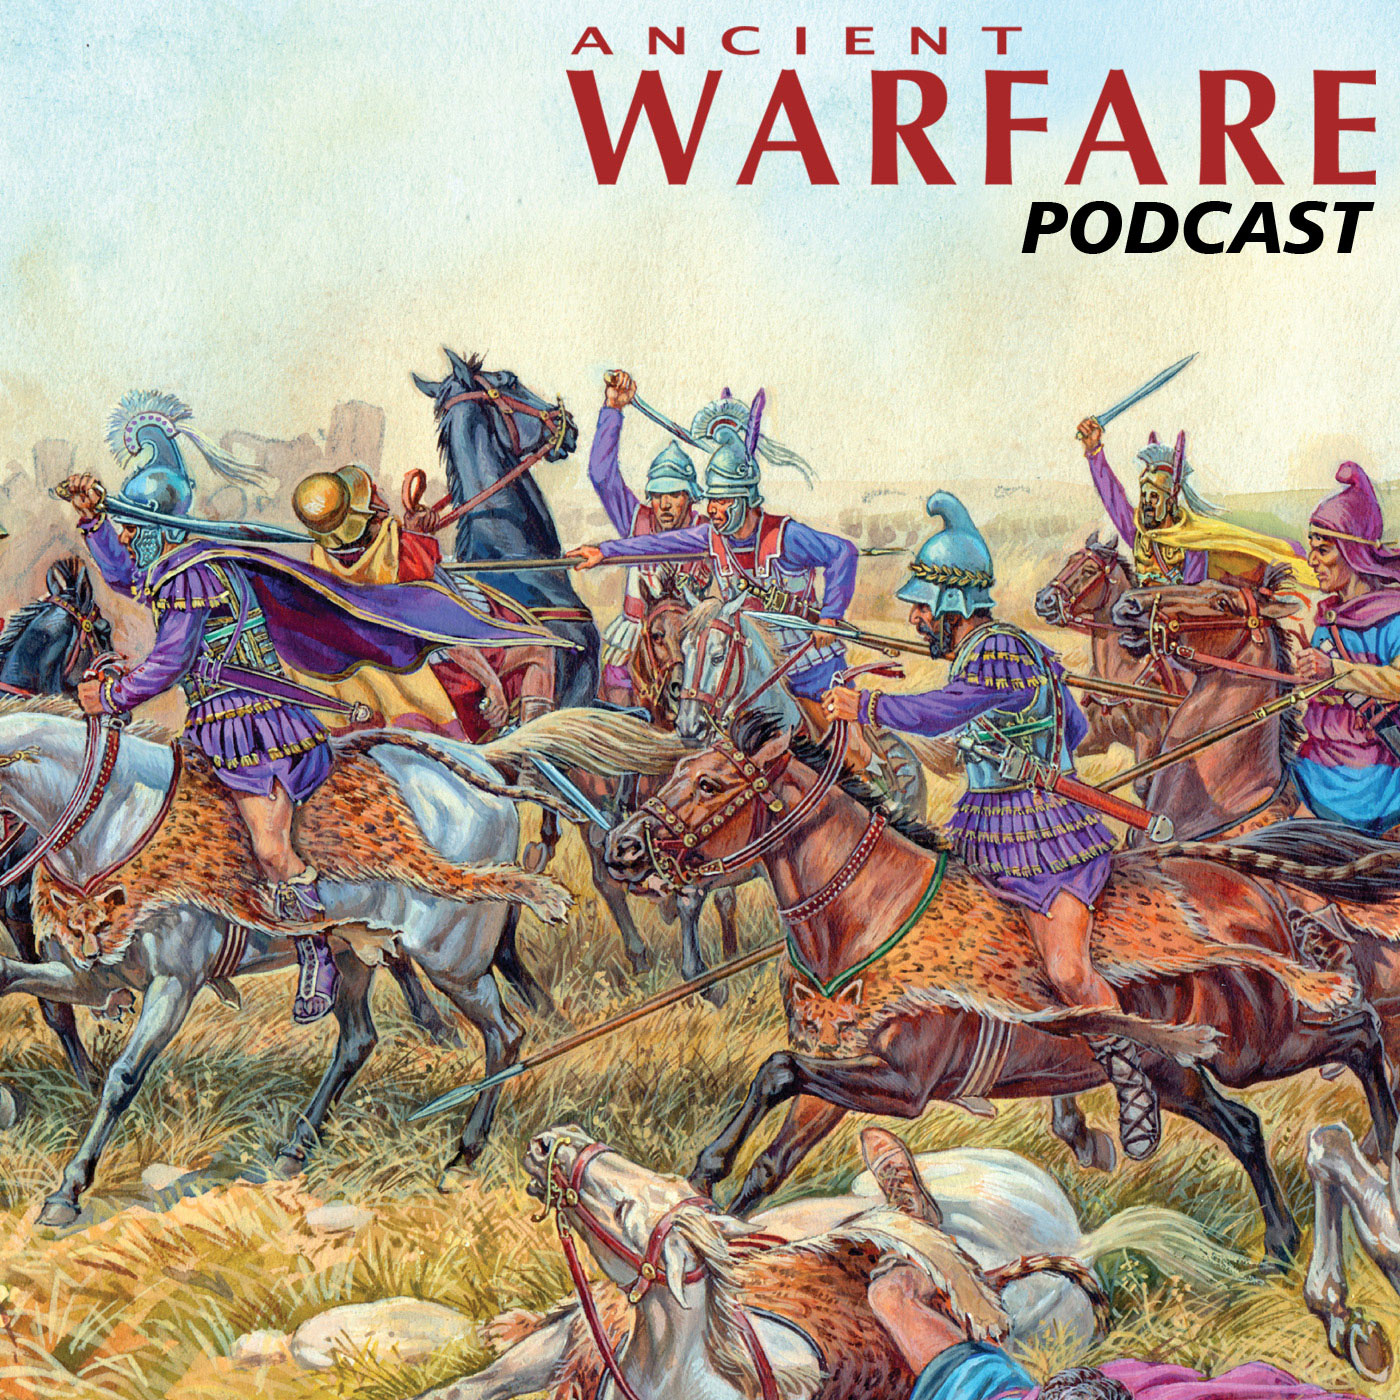 Deserters, defectors, traitors